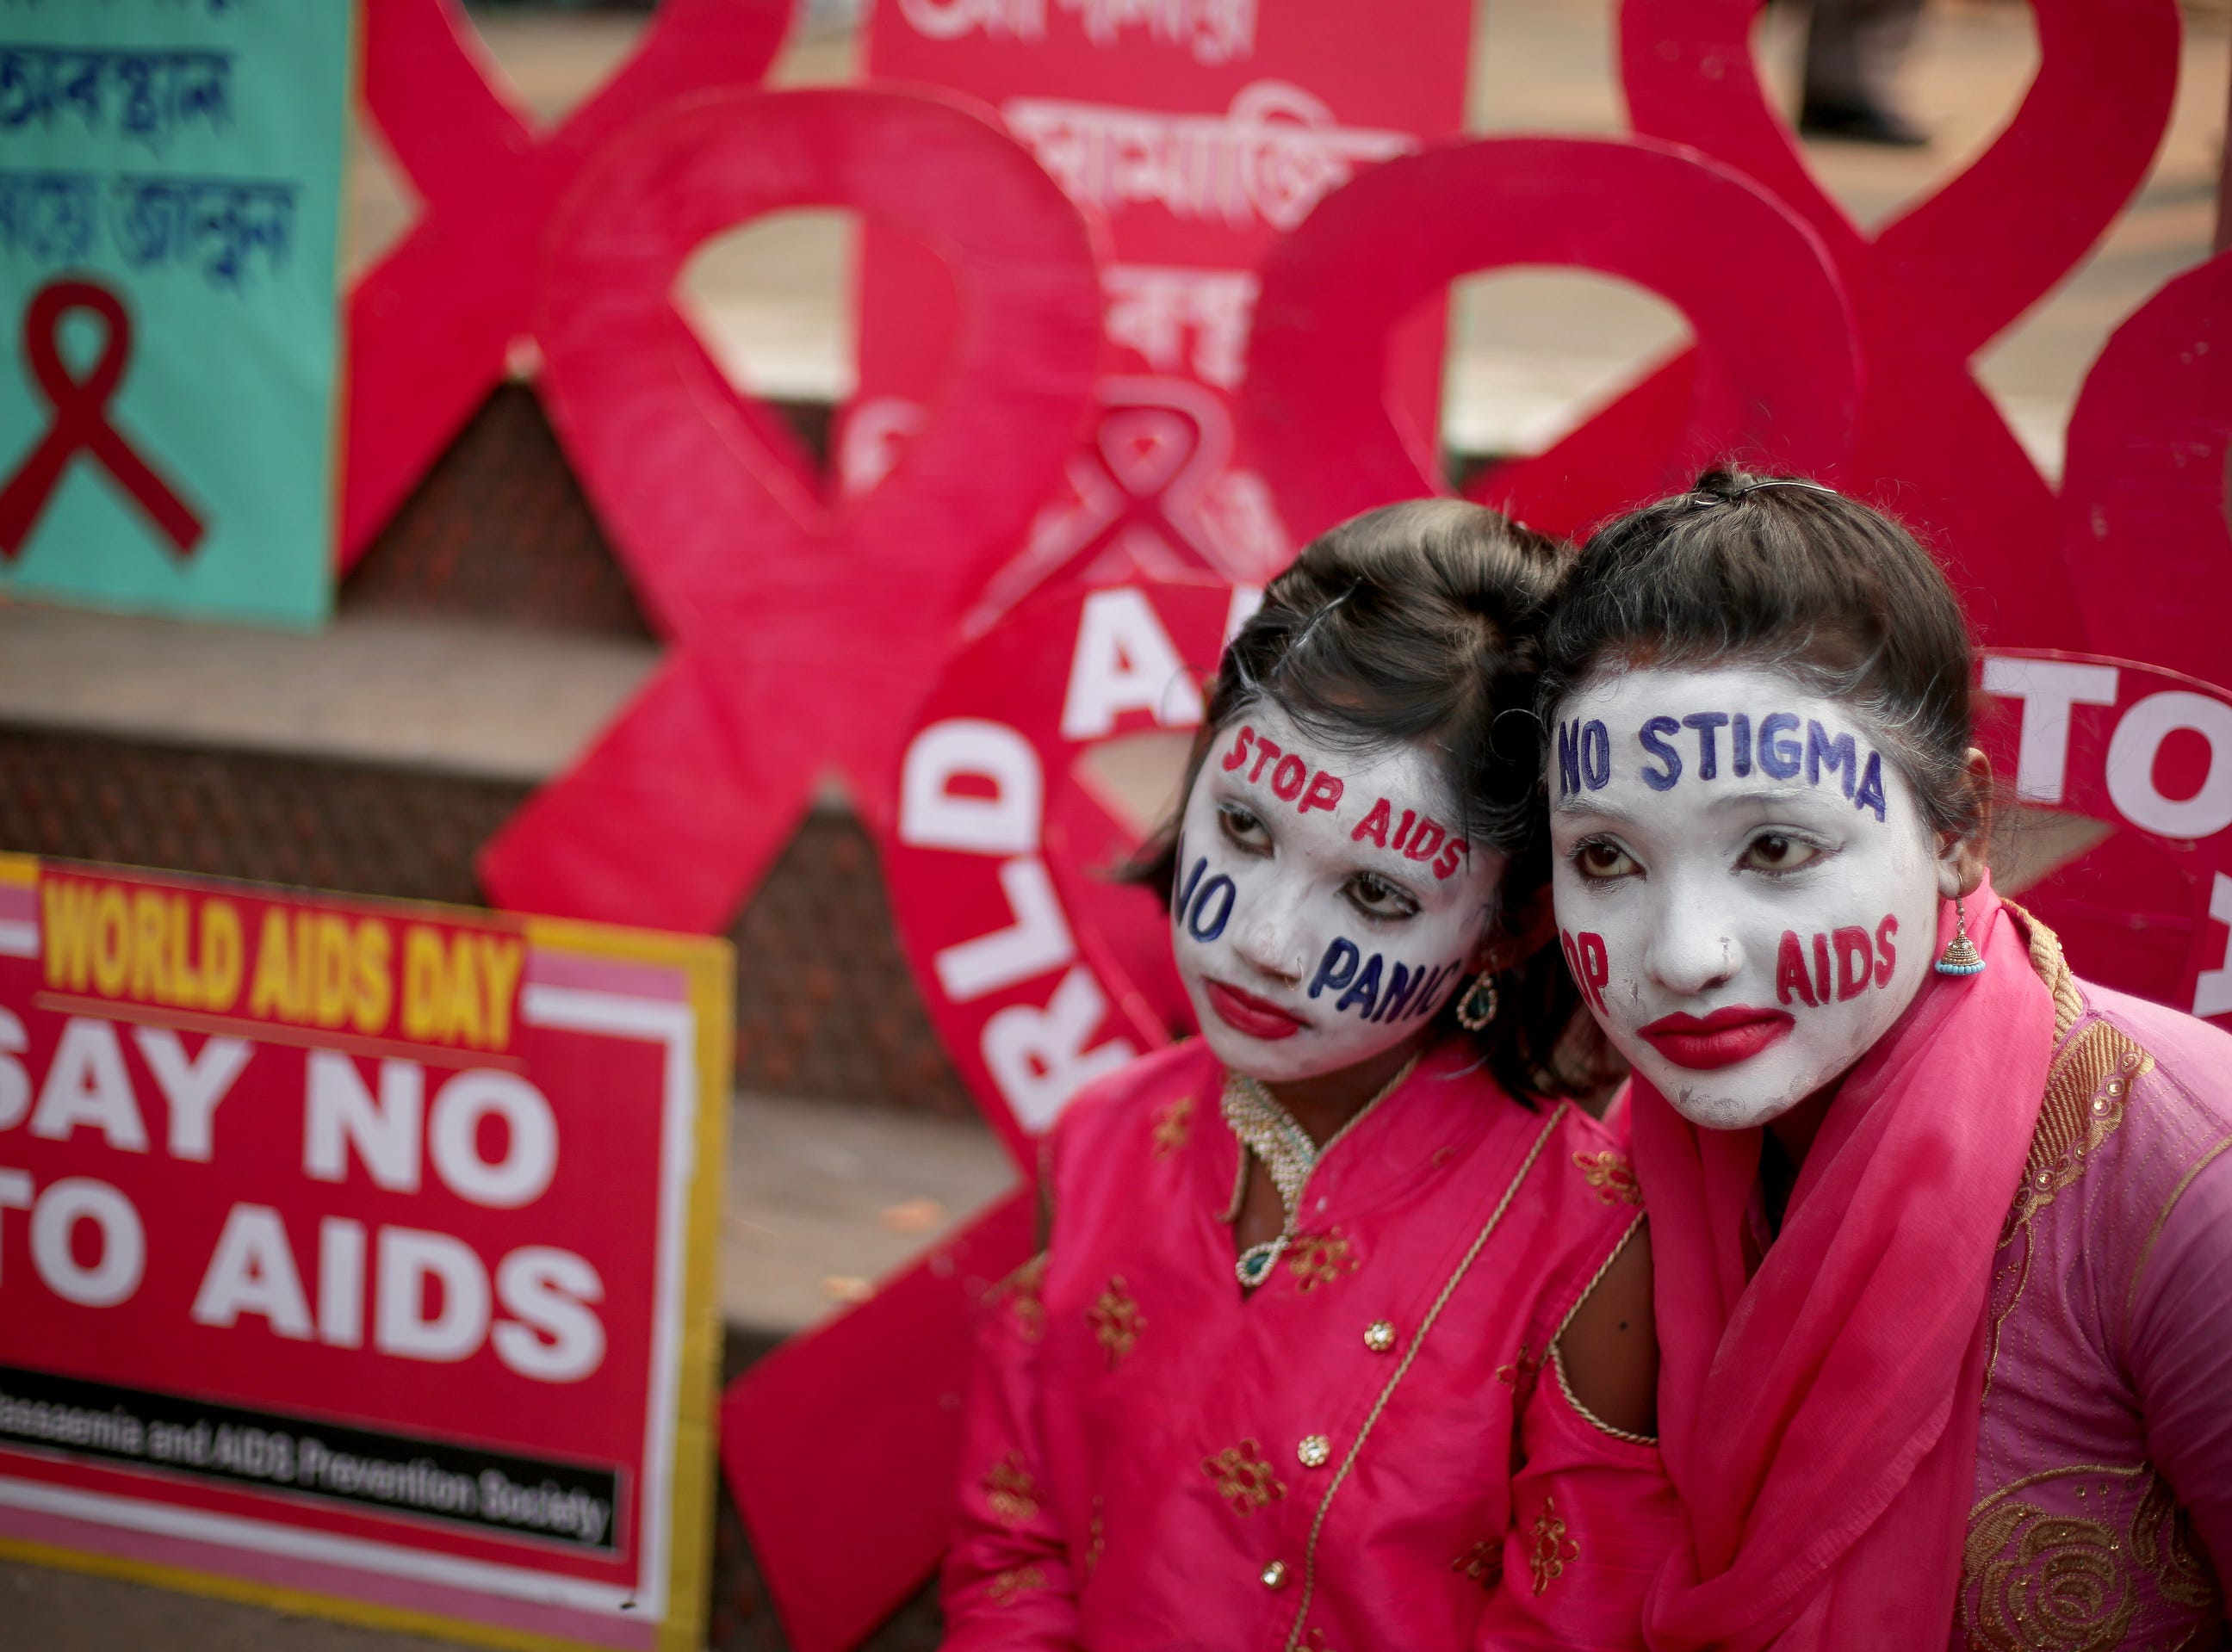 Activists attend an AIDS awareness campaign on the eve of World AIDS Day in Kolkata, Eastern India on Friday.  World AIDS Day is observed with calls from international health and advocacy organizations for the public to get involved in programs for awareness, prevention and treatment of HIV/AIDS.